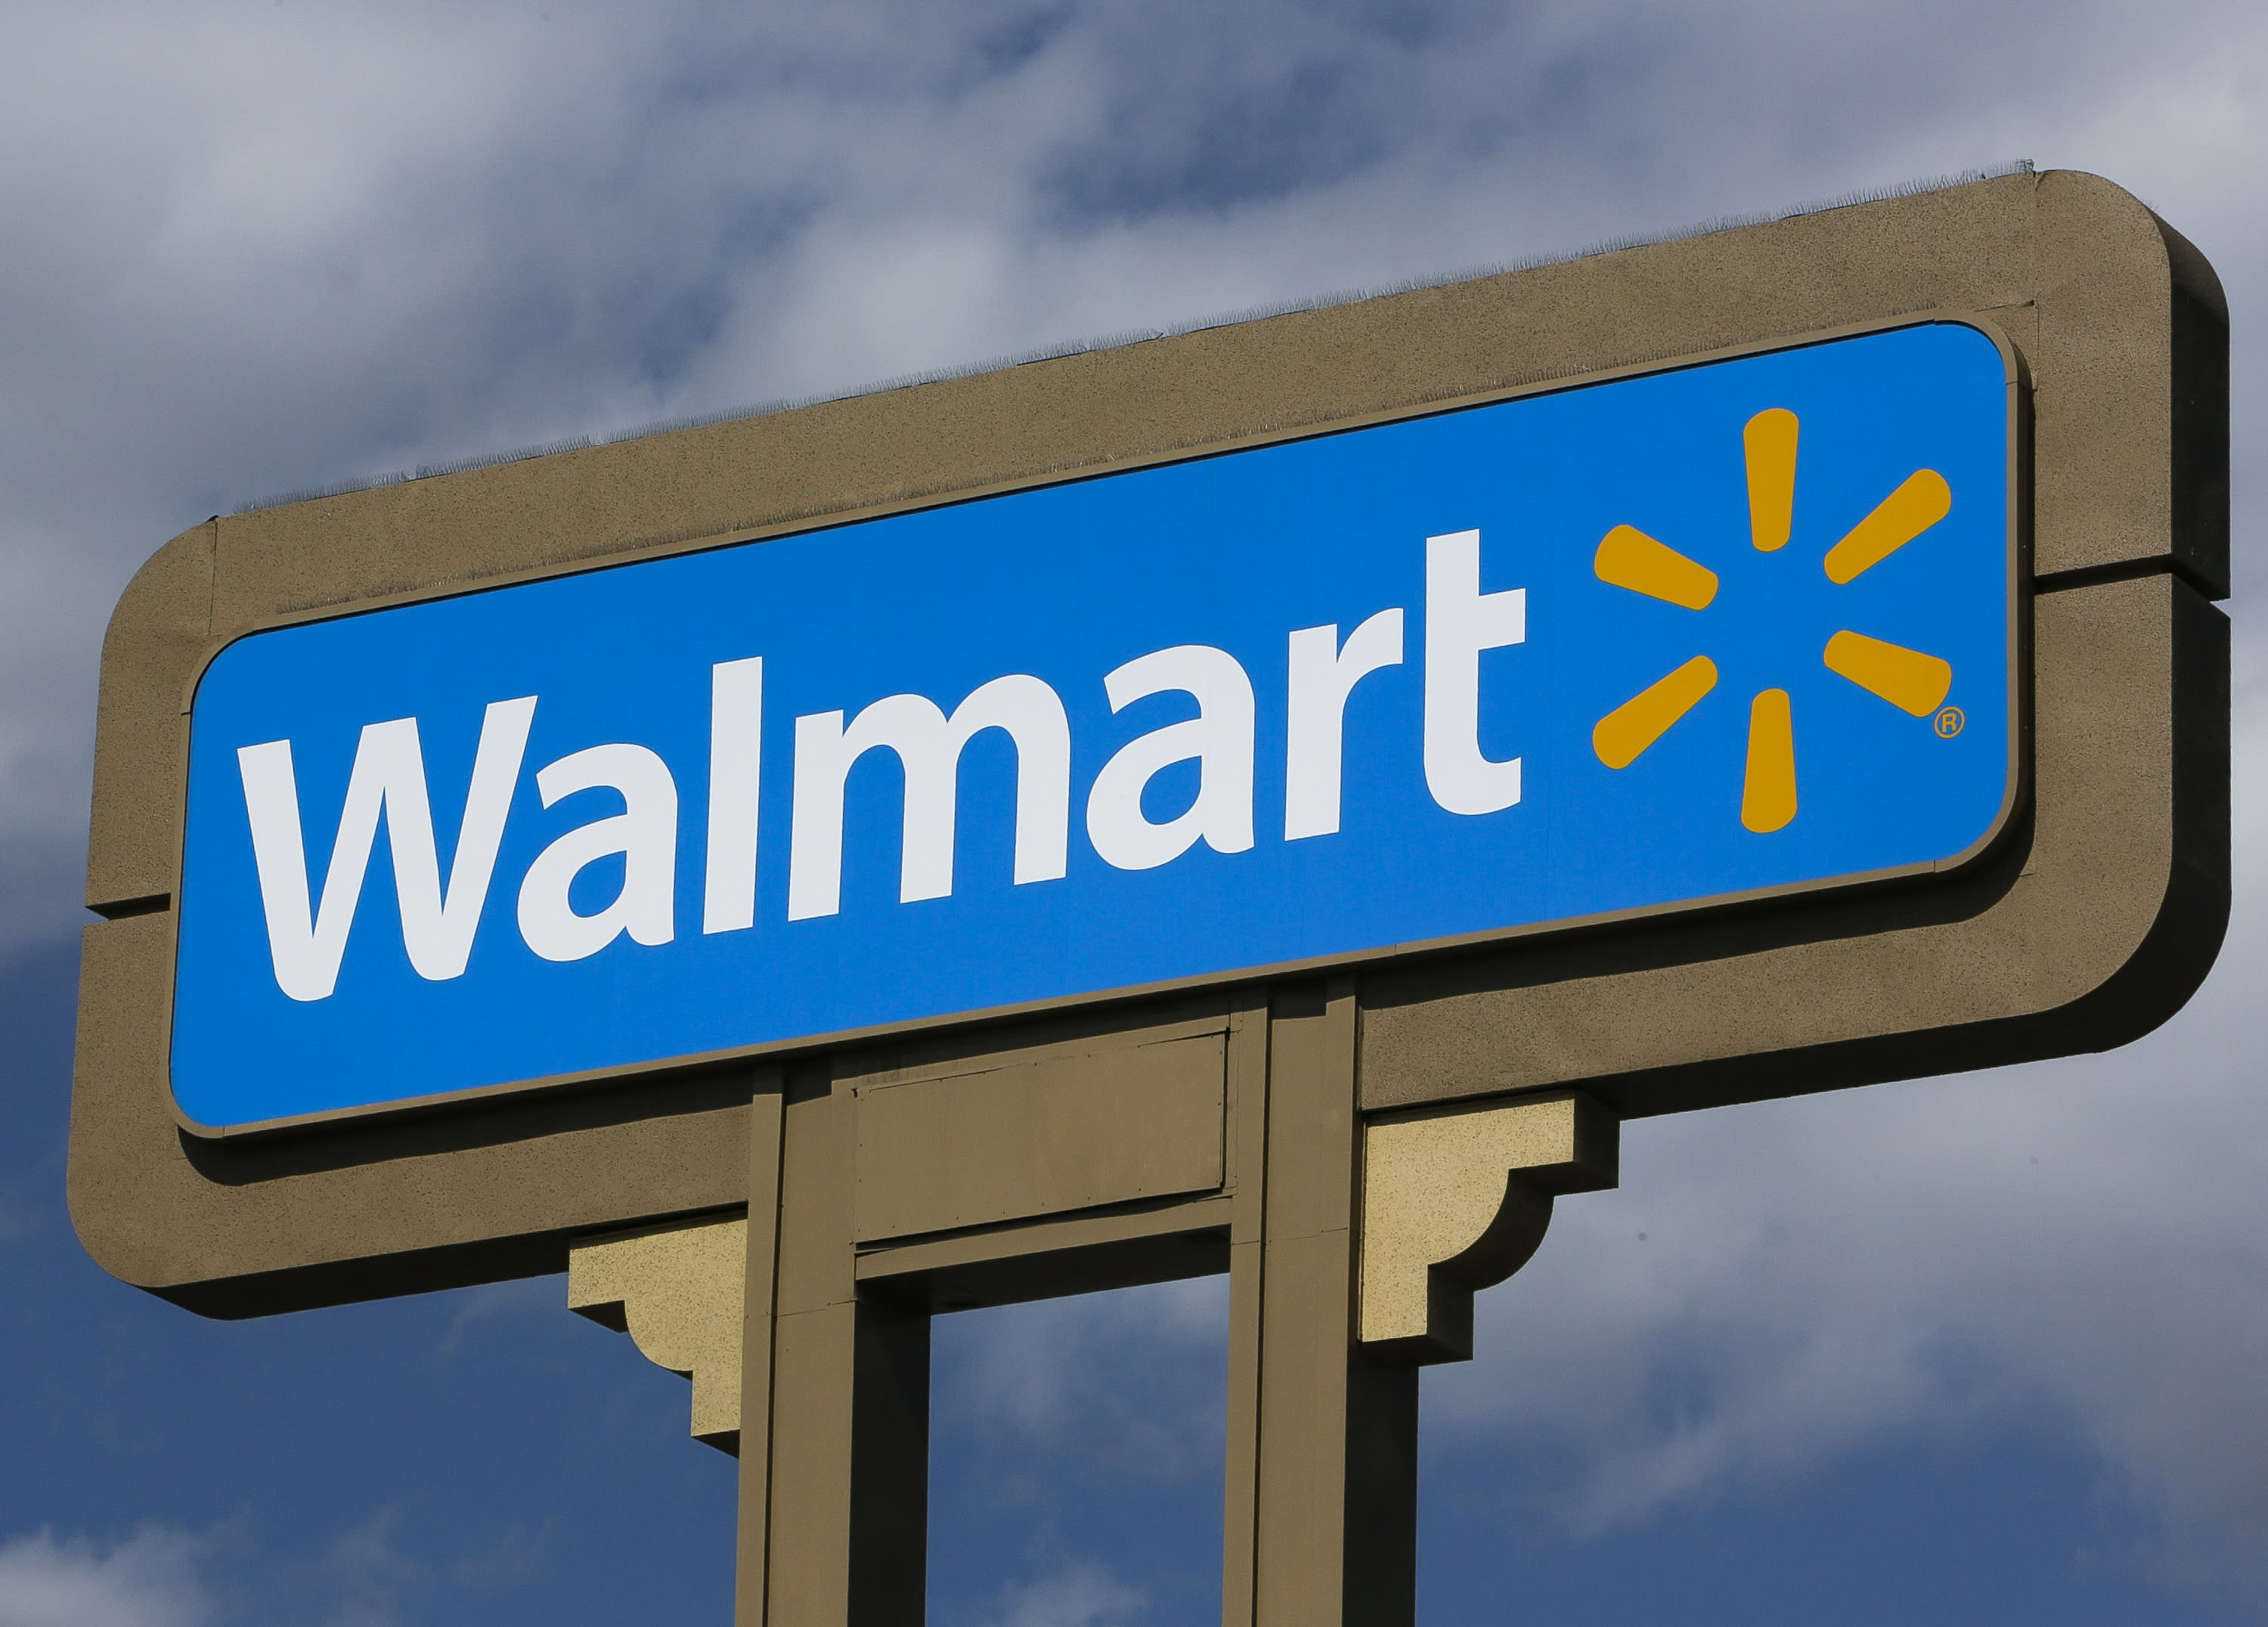 Wal-Mart to stop selling AR-15s and similar weapons